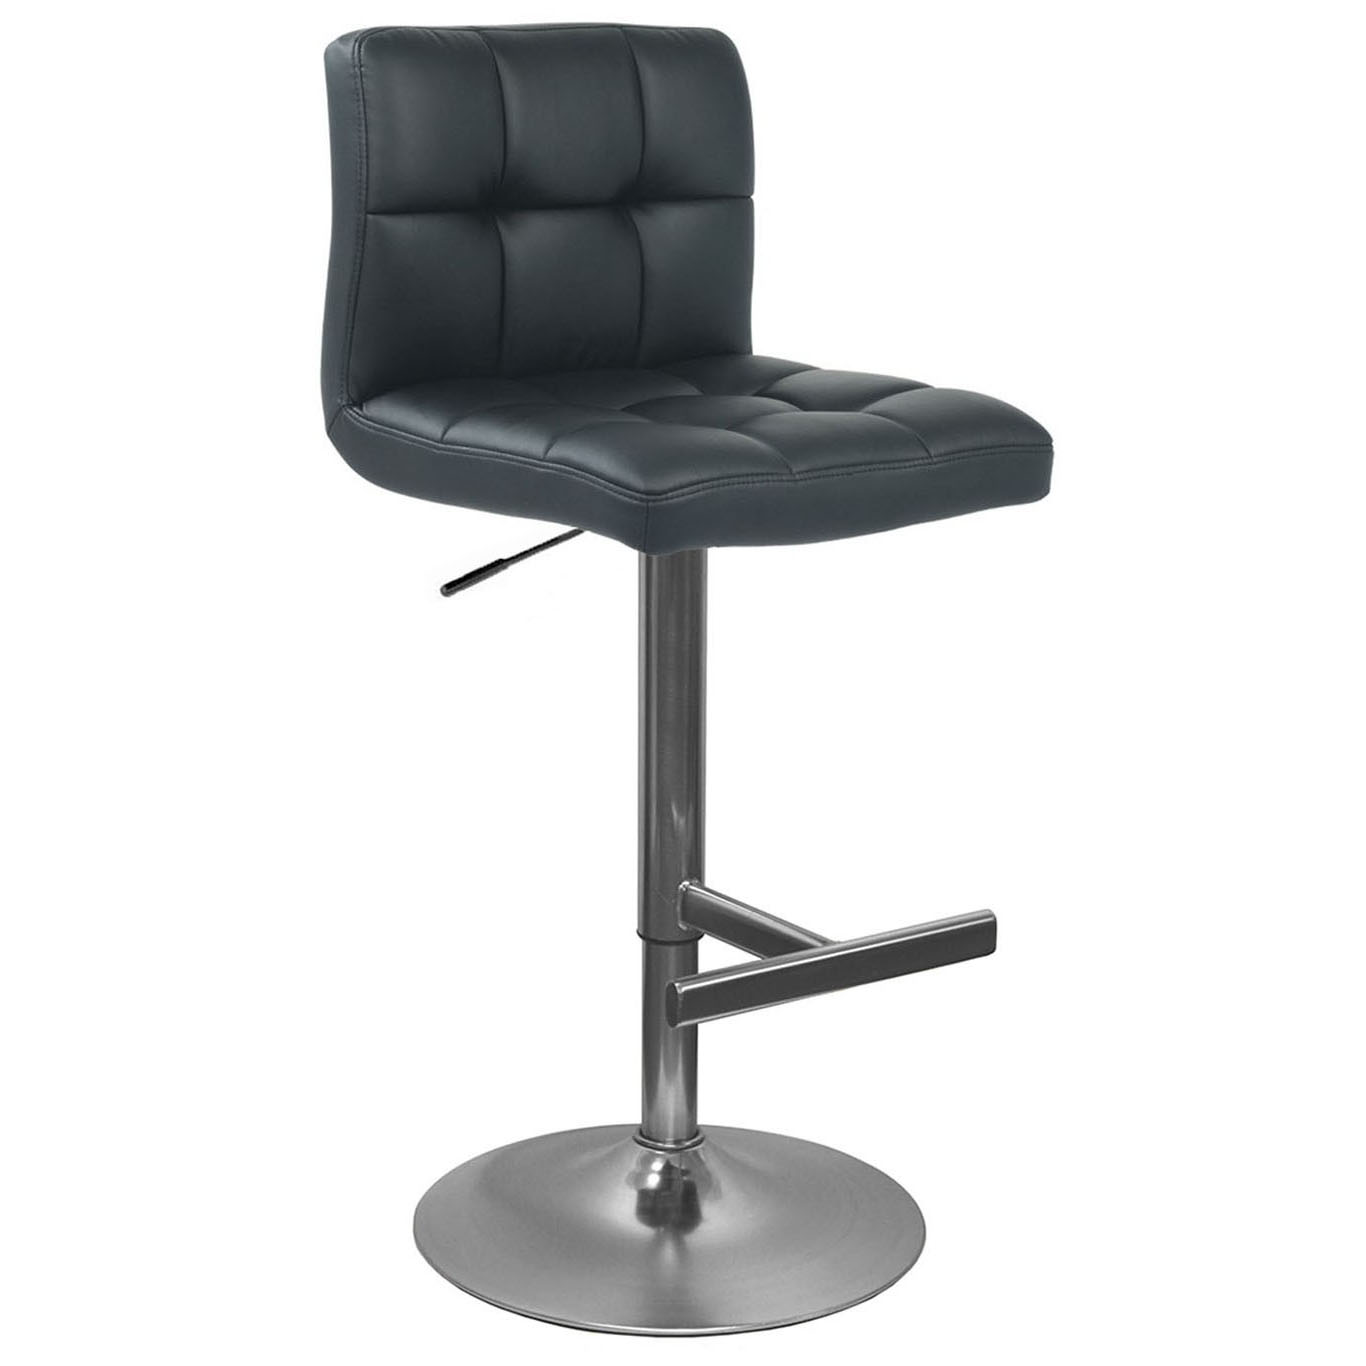 Allegro Brushed Bar Stool - Black Product Image